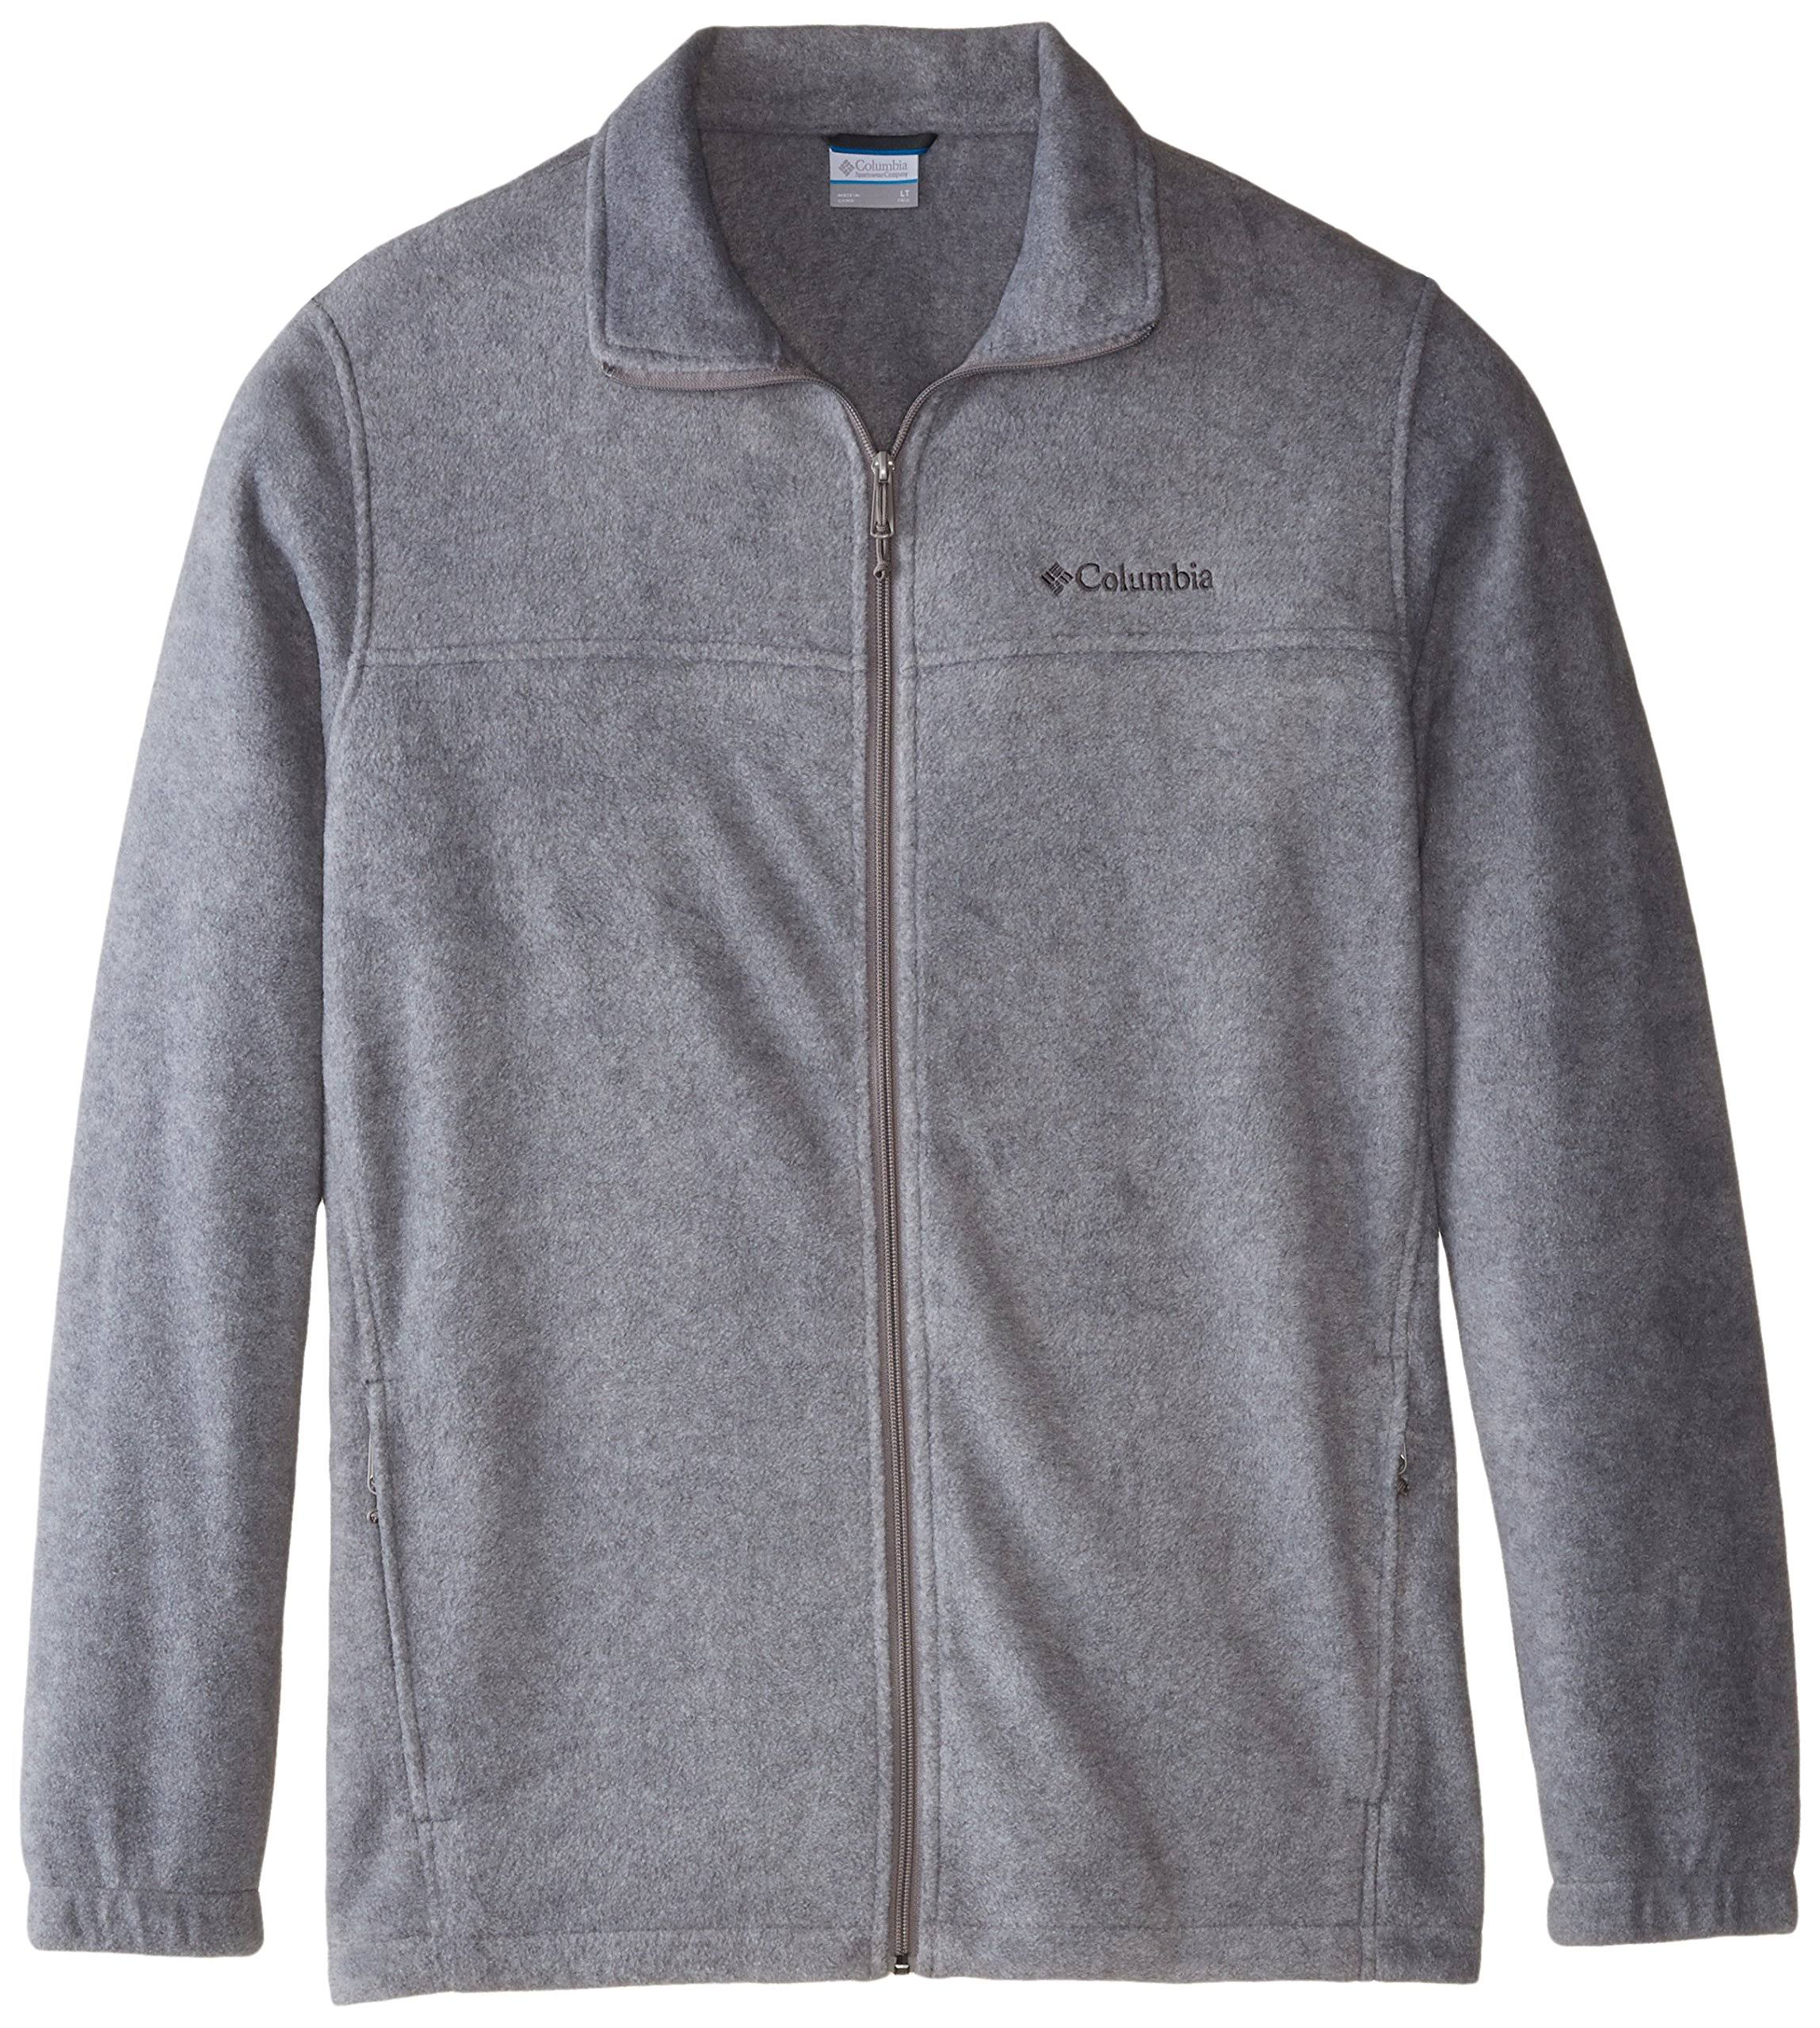 Full Fleec Tall Steens Mountain Herren 0 Columbia 2 Big Zip amp; Groß qwa7tnYvx